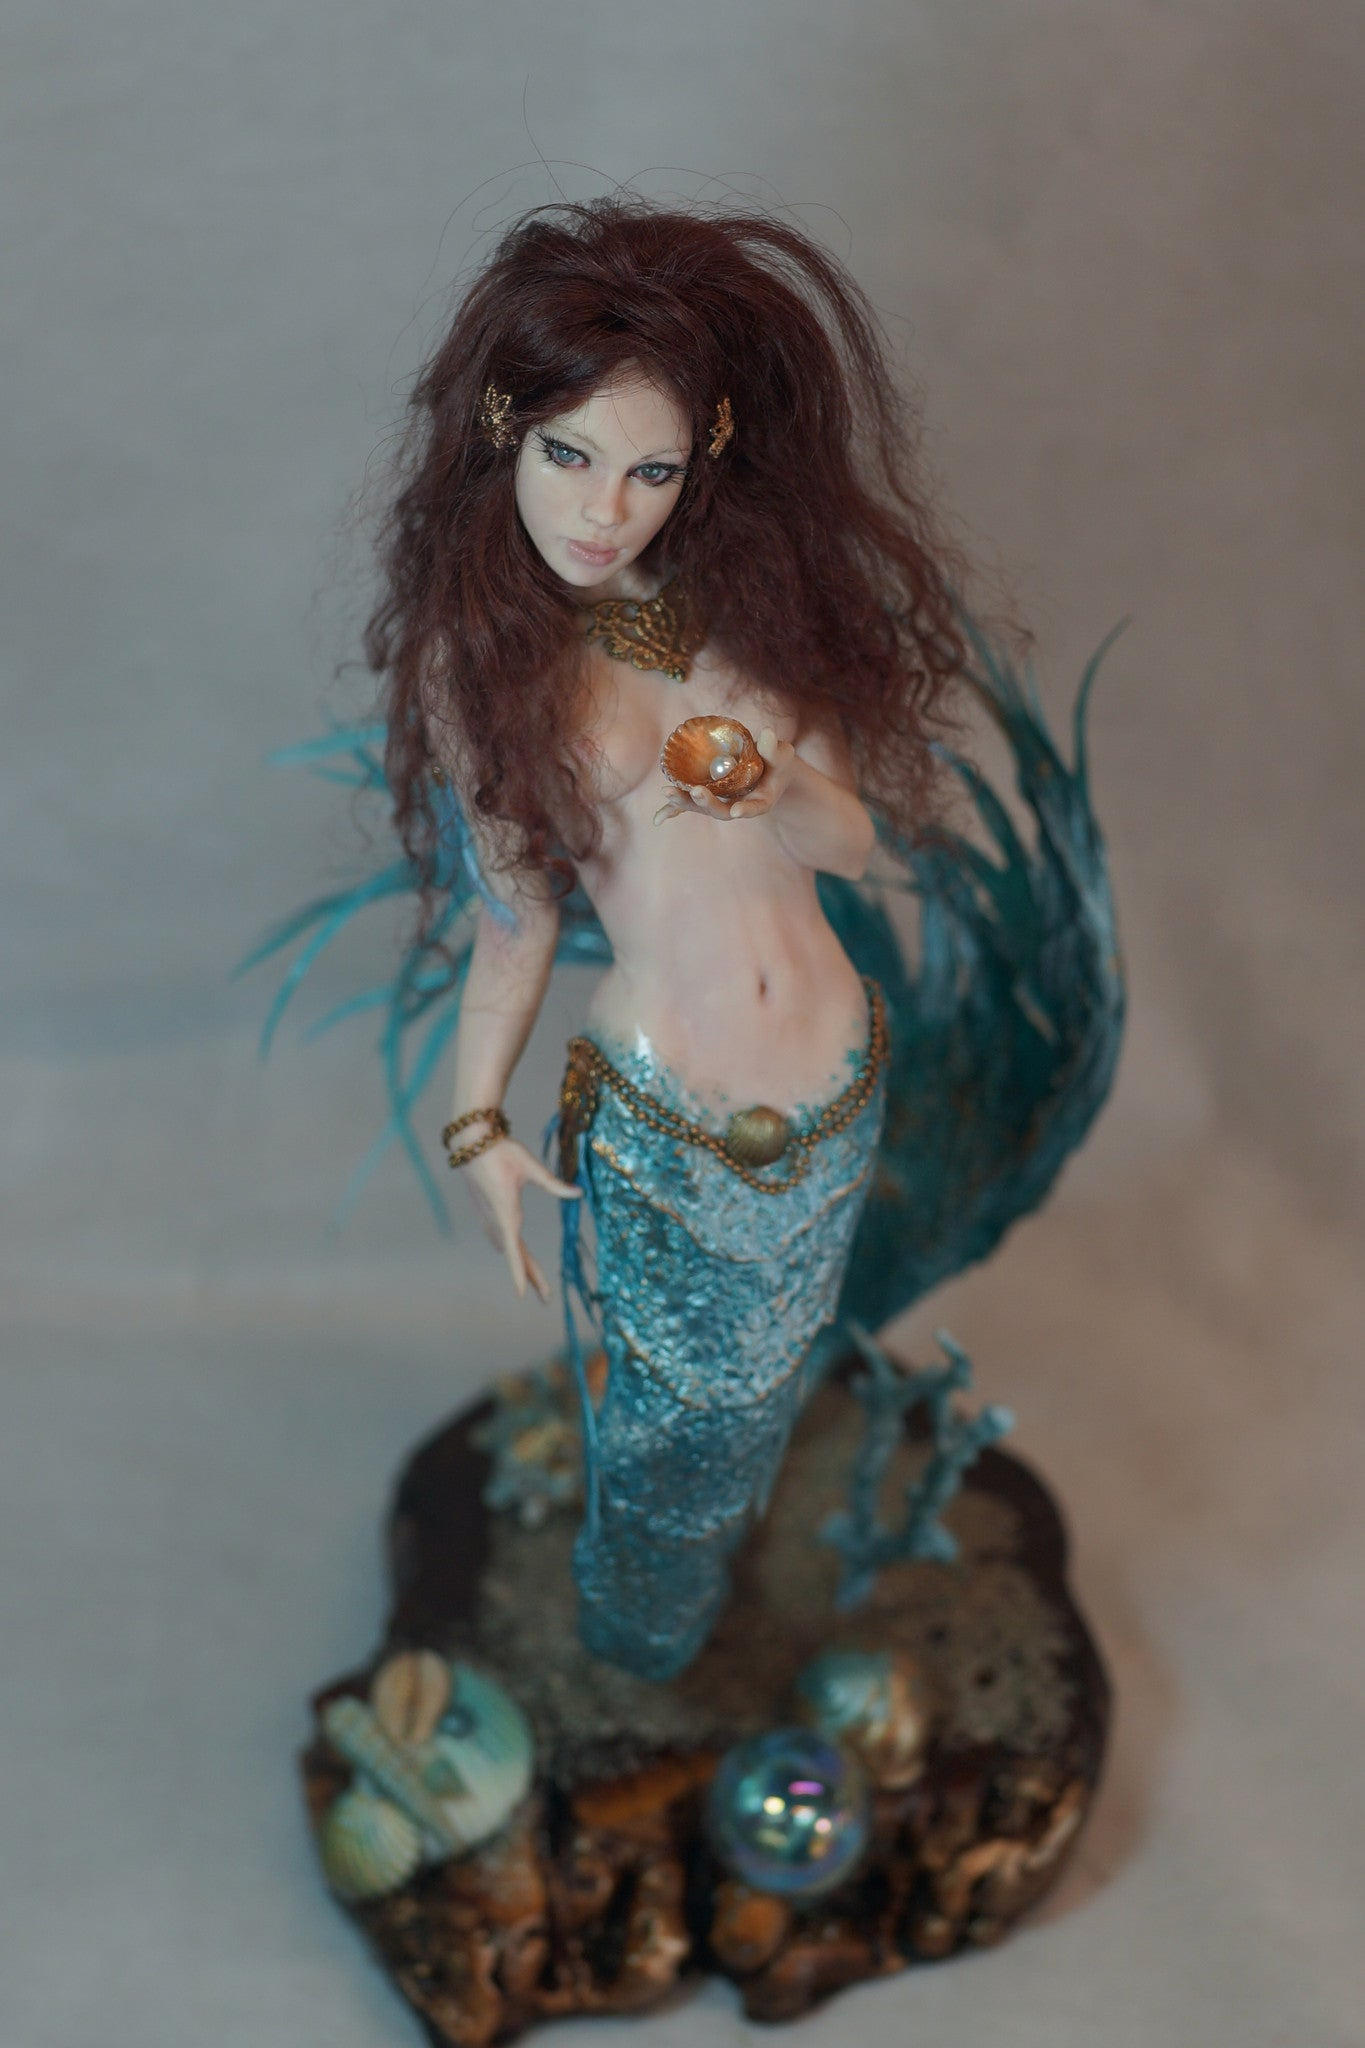 Jade Mermaid OOAK Fixed Sculpt by Natalie Ruiz